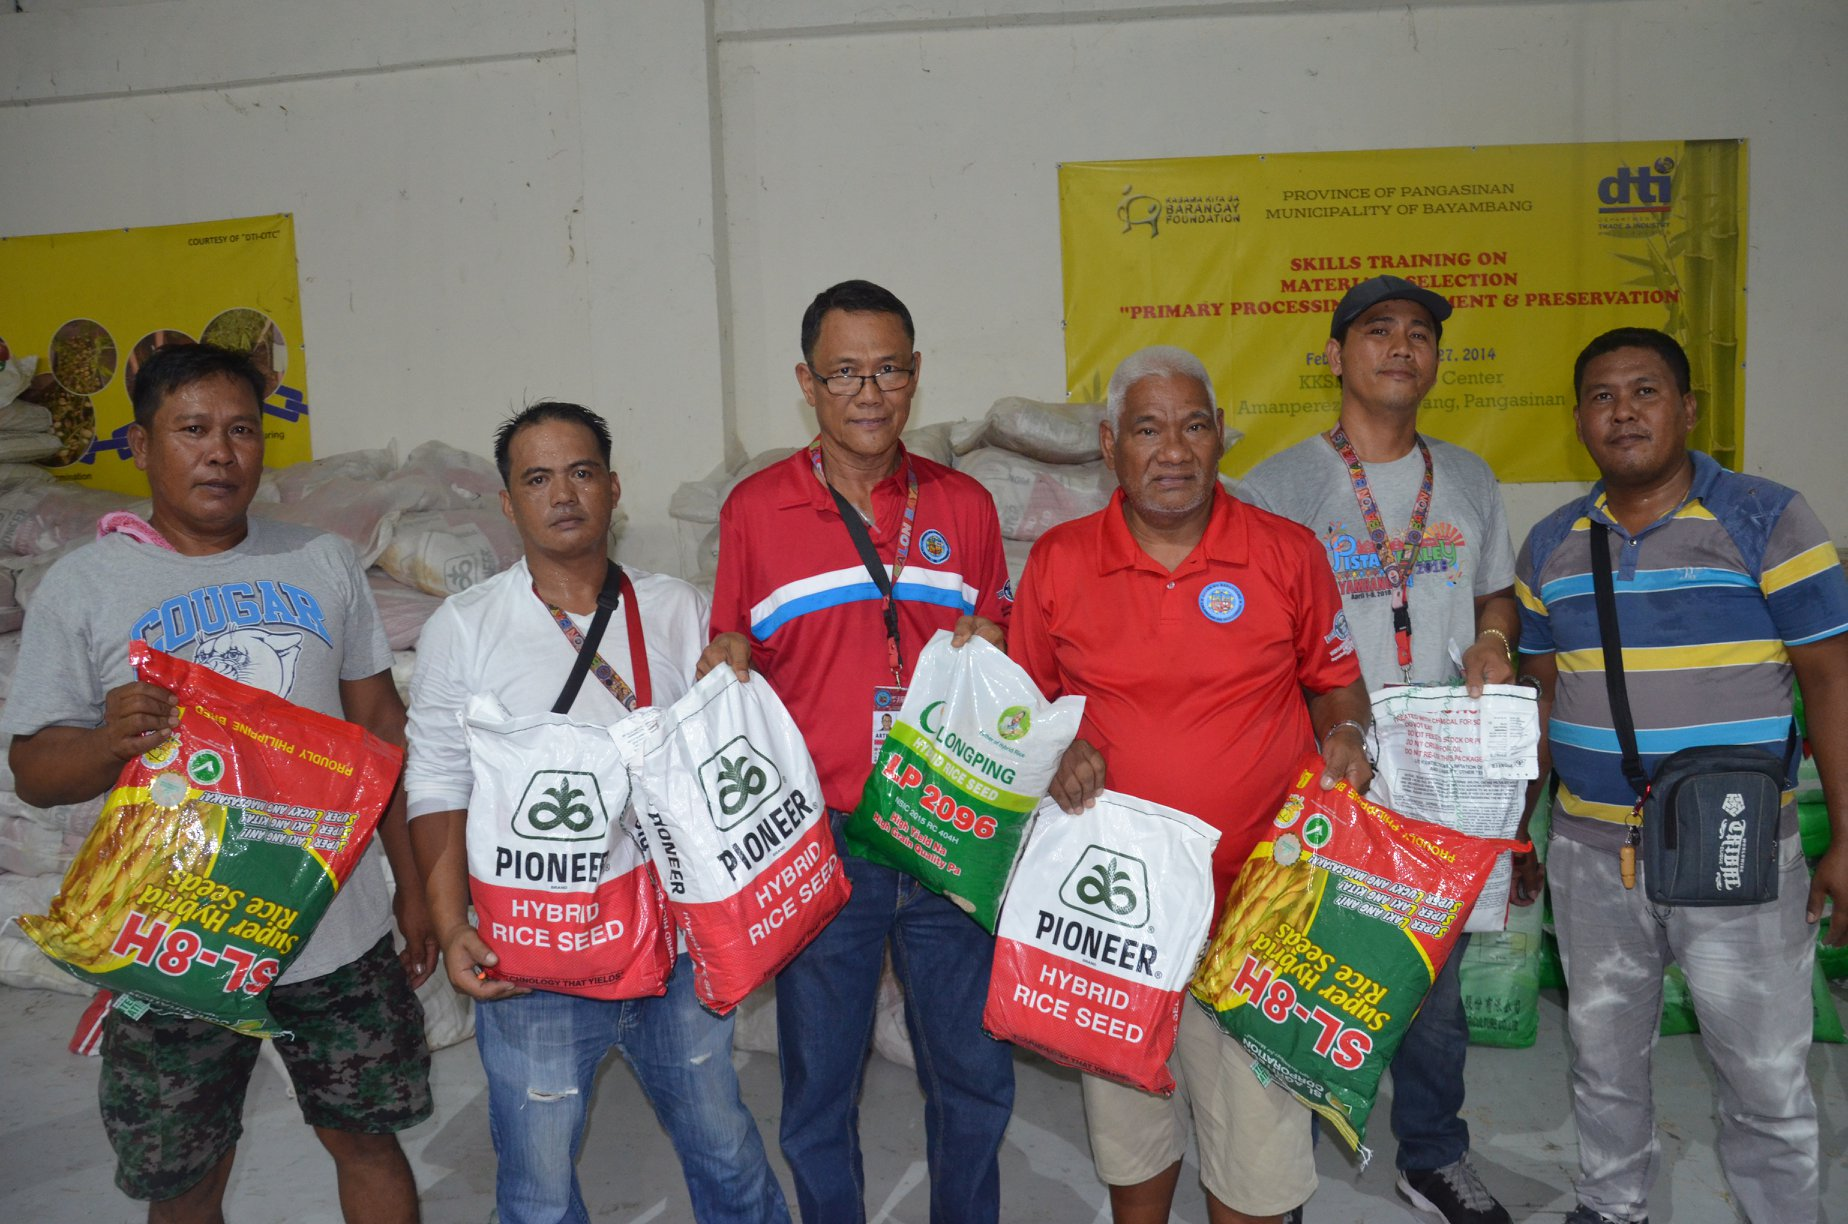 Sacks of palay seeds from DA distributed to harabas victims